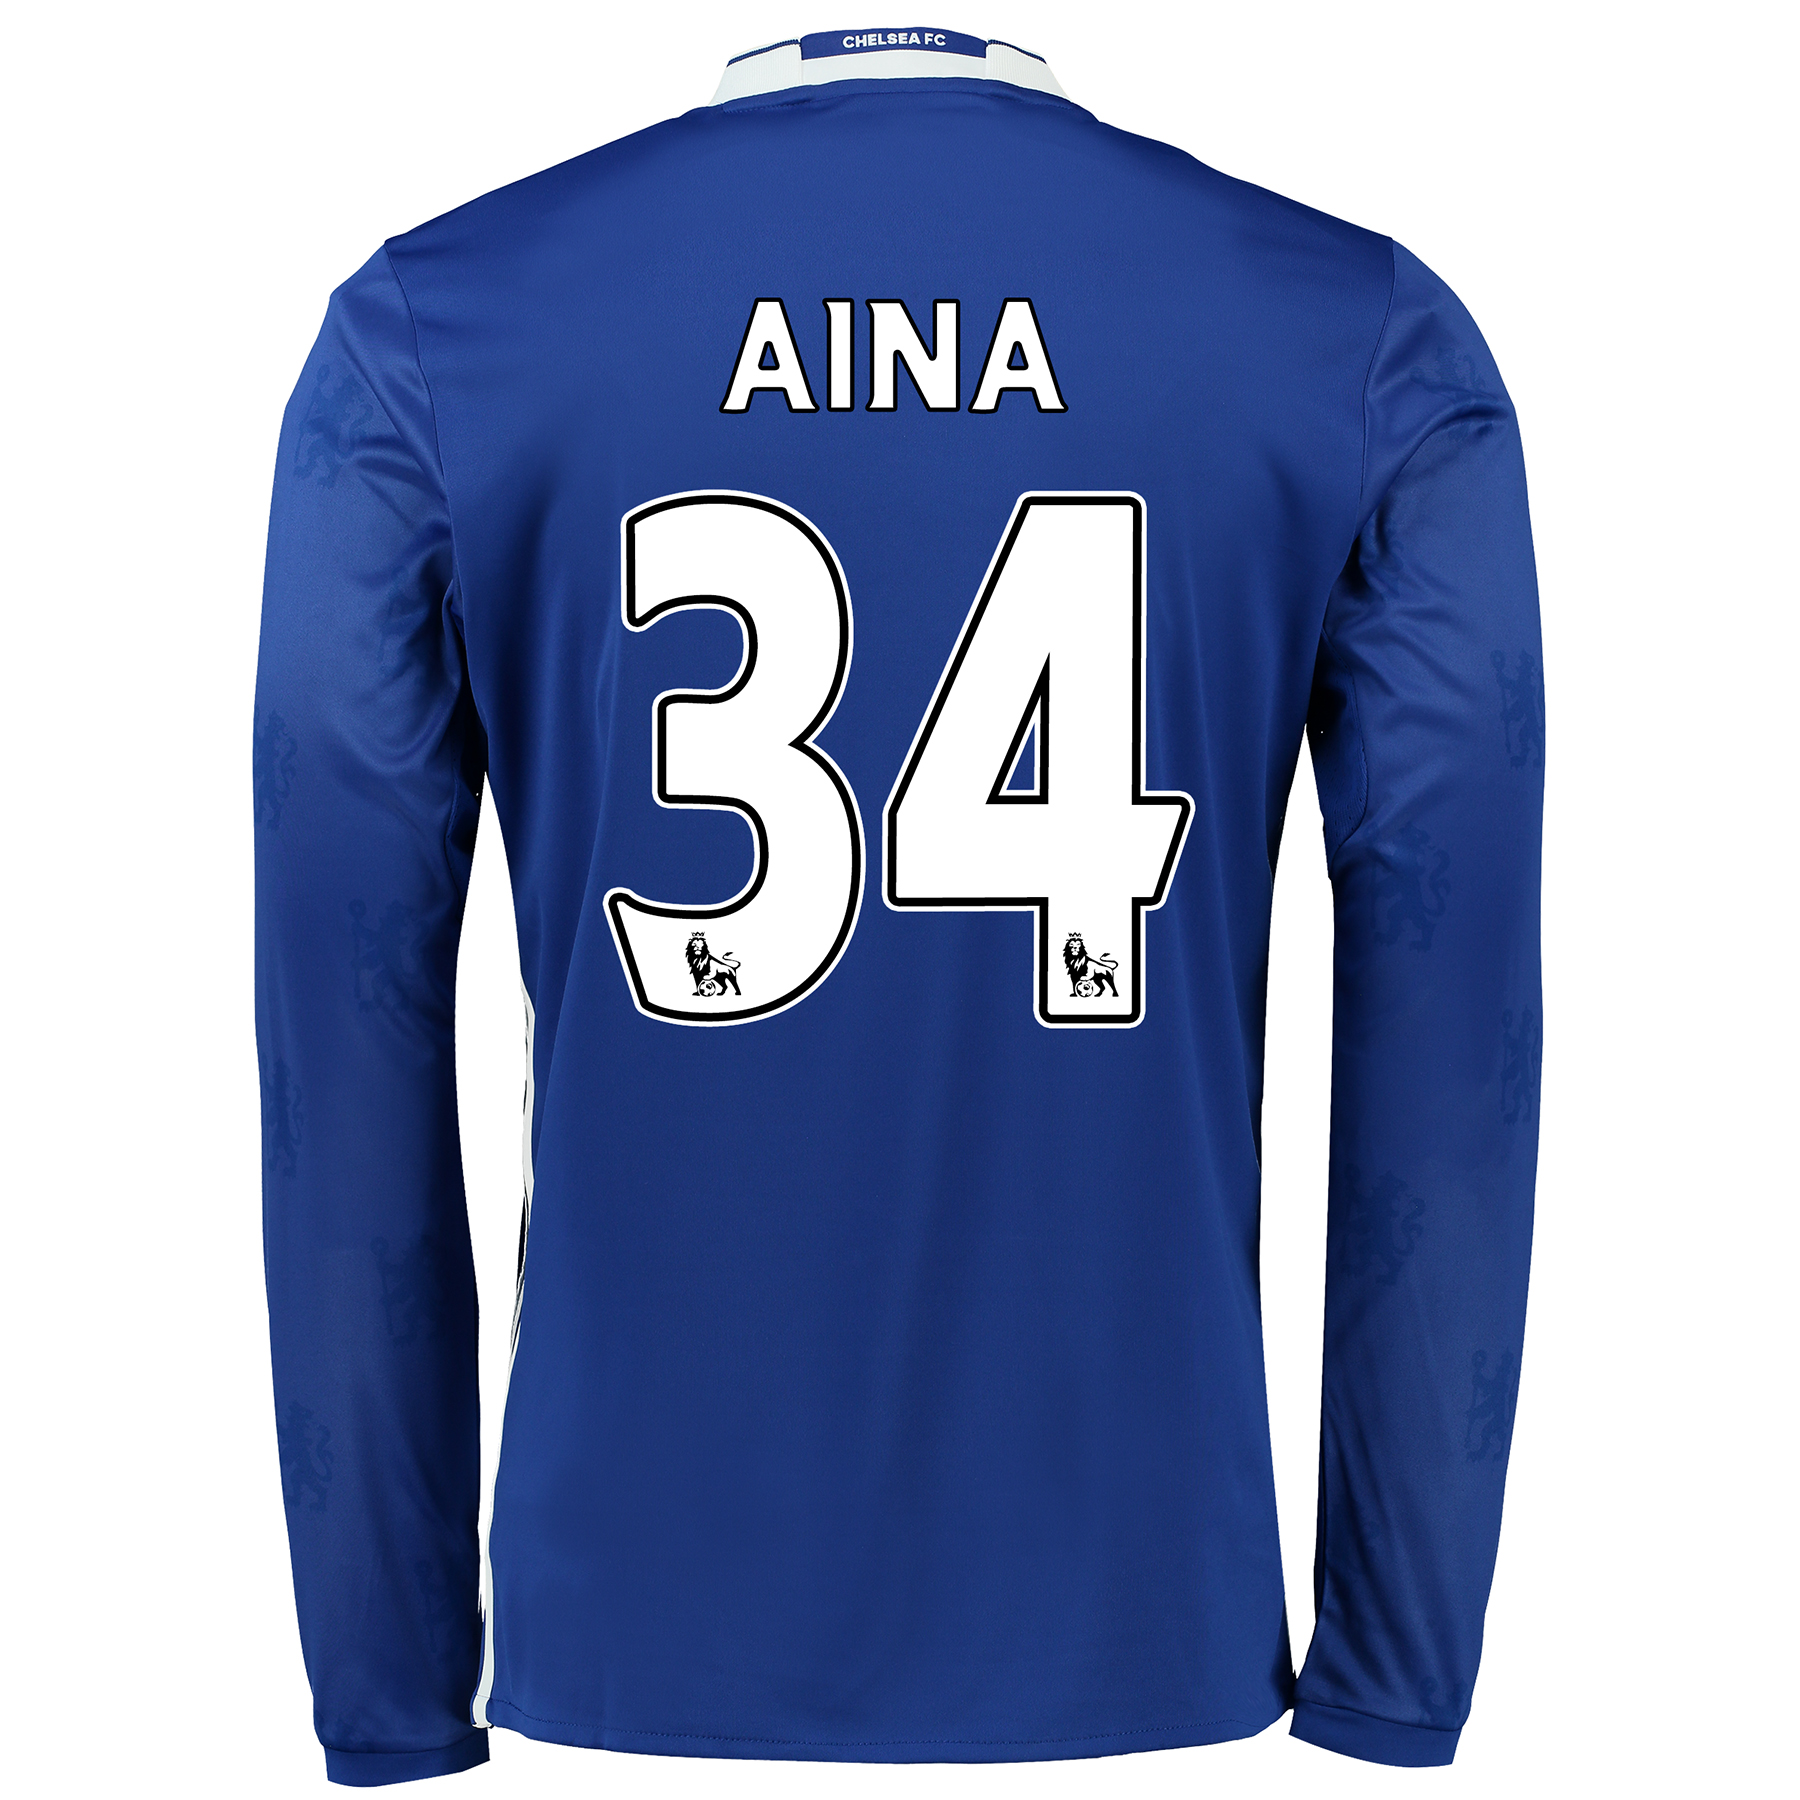 Chelsea Home Shirt 2016-17 - Kids - Long Sleeve with Aina 34 printing